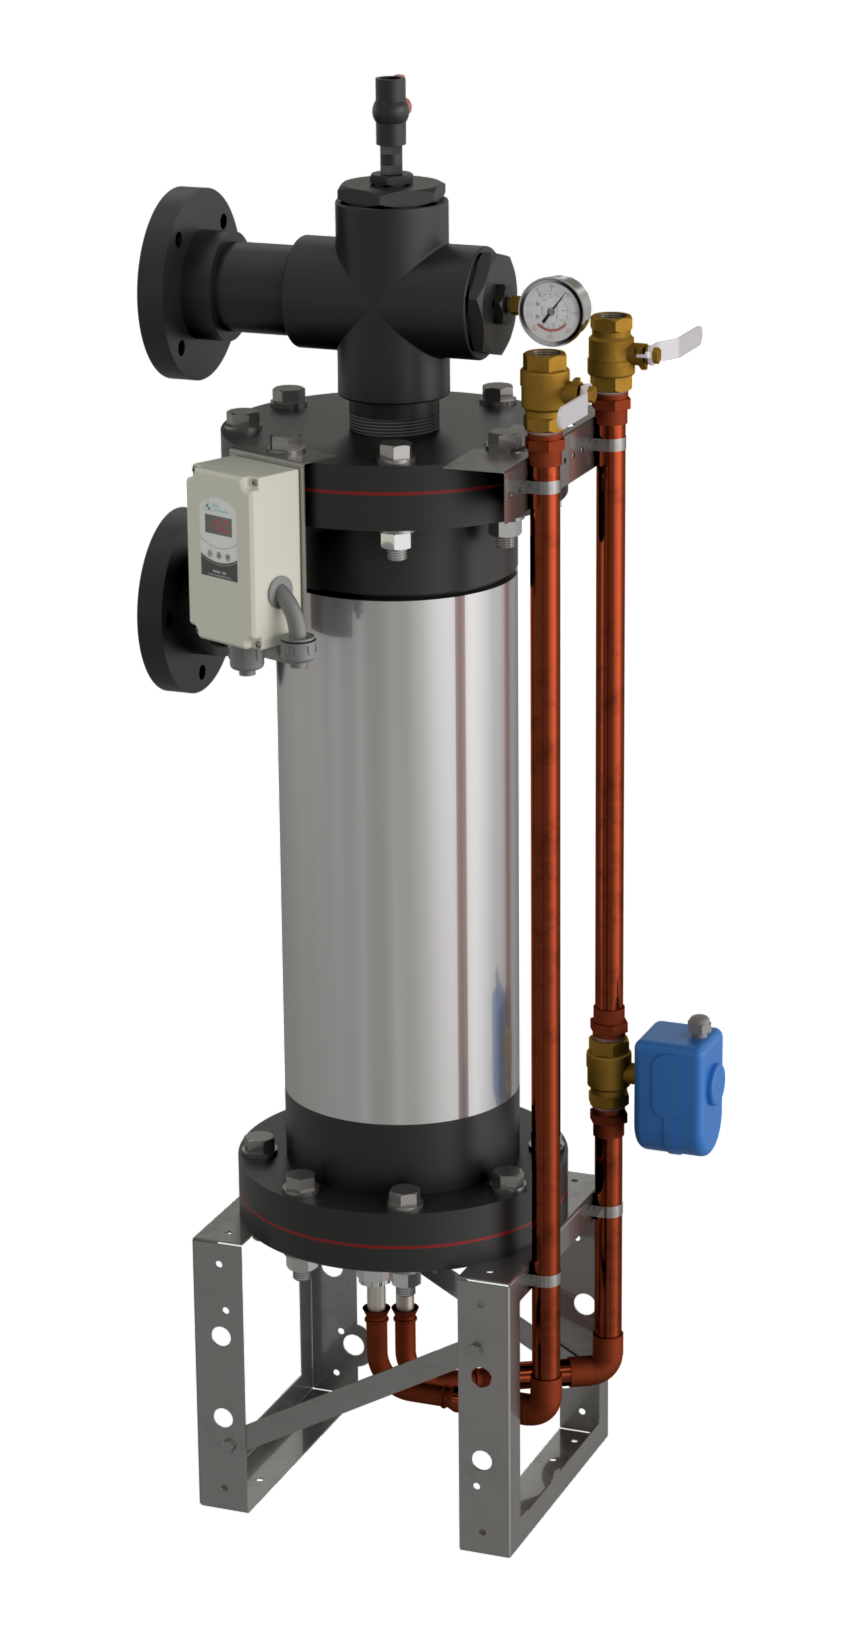 HydroMarine - Water-to-Water Heat Exchanger